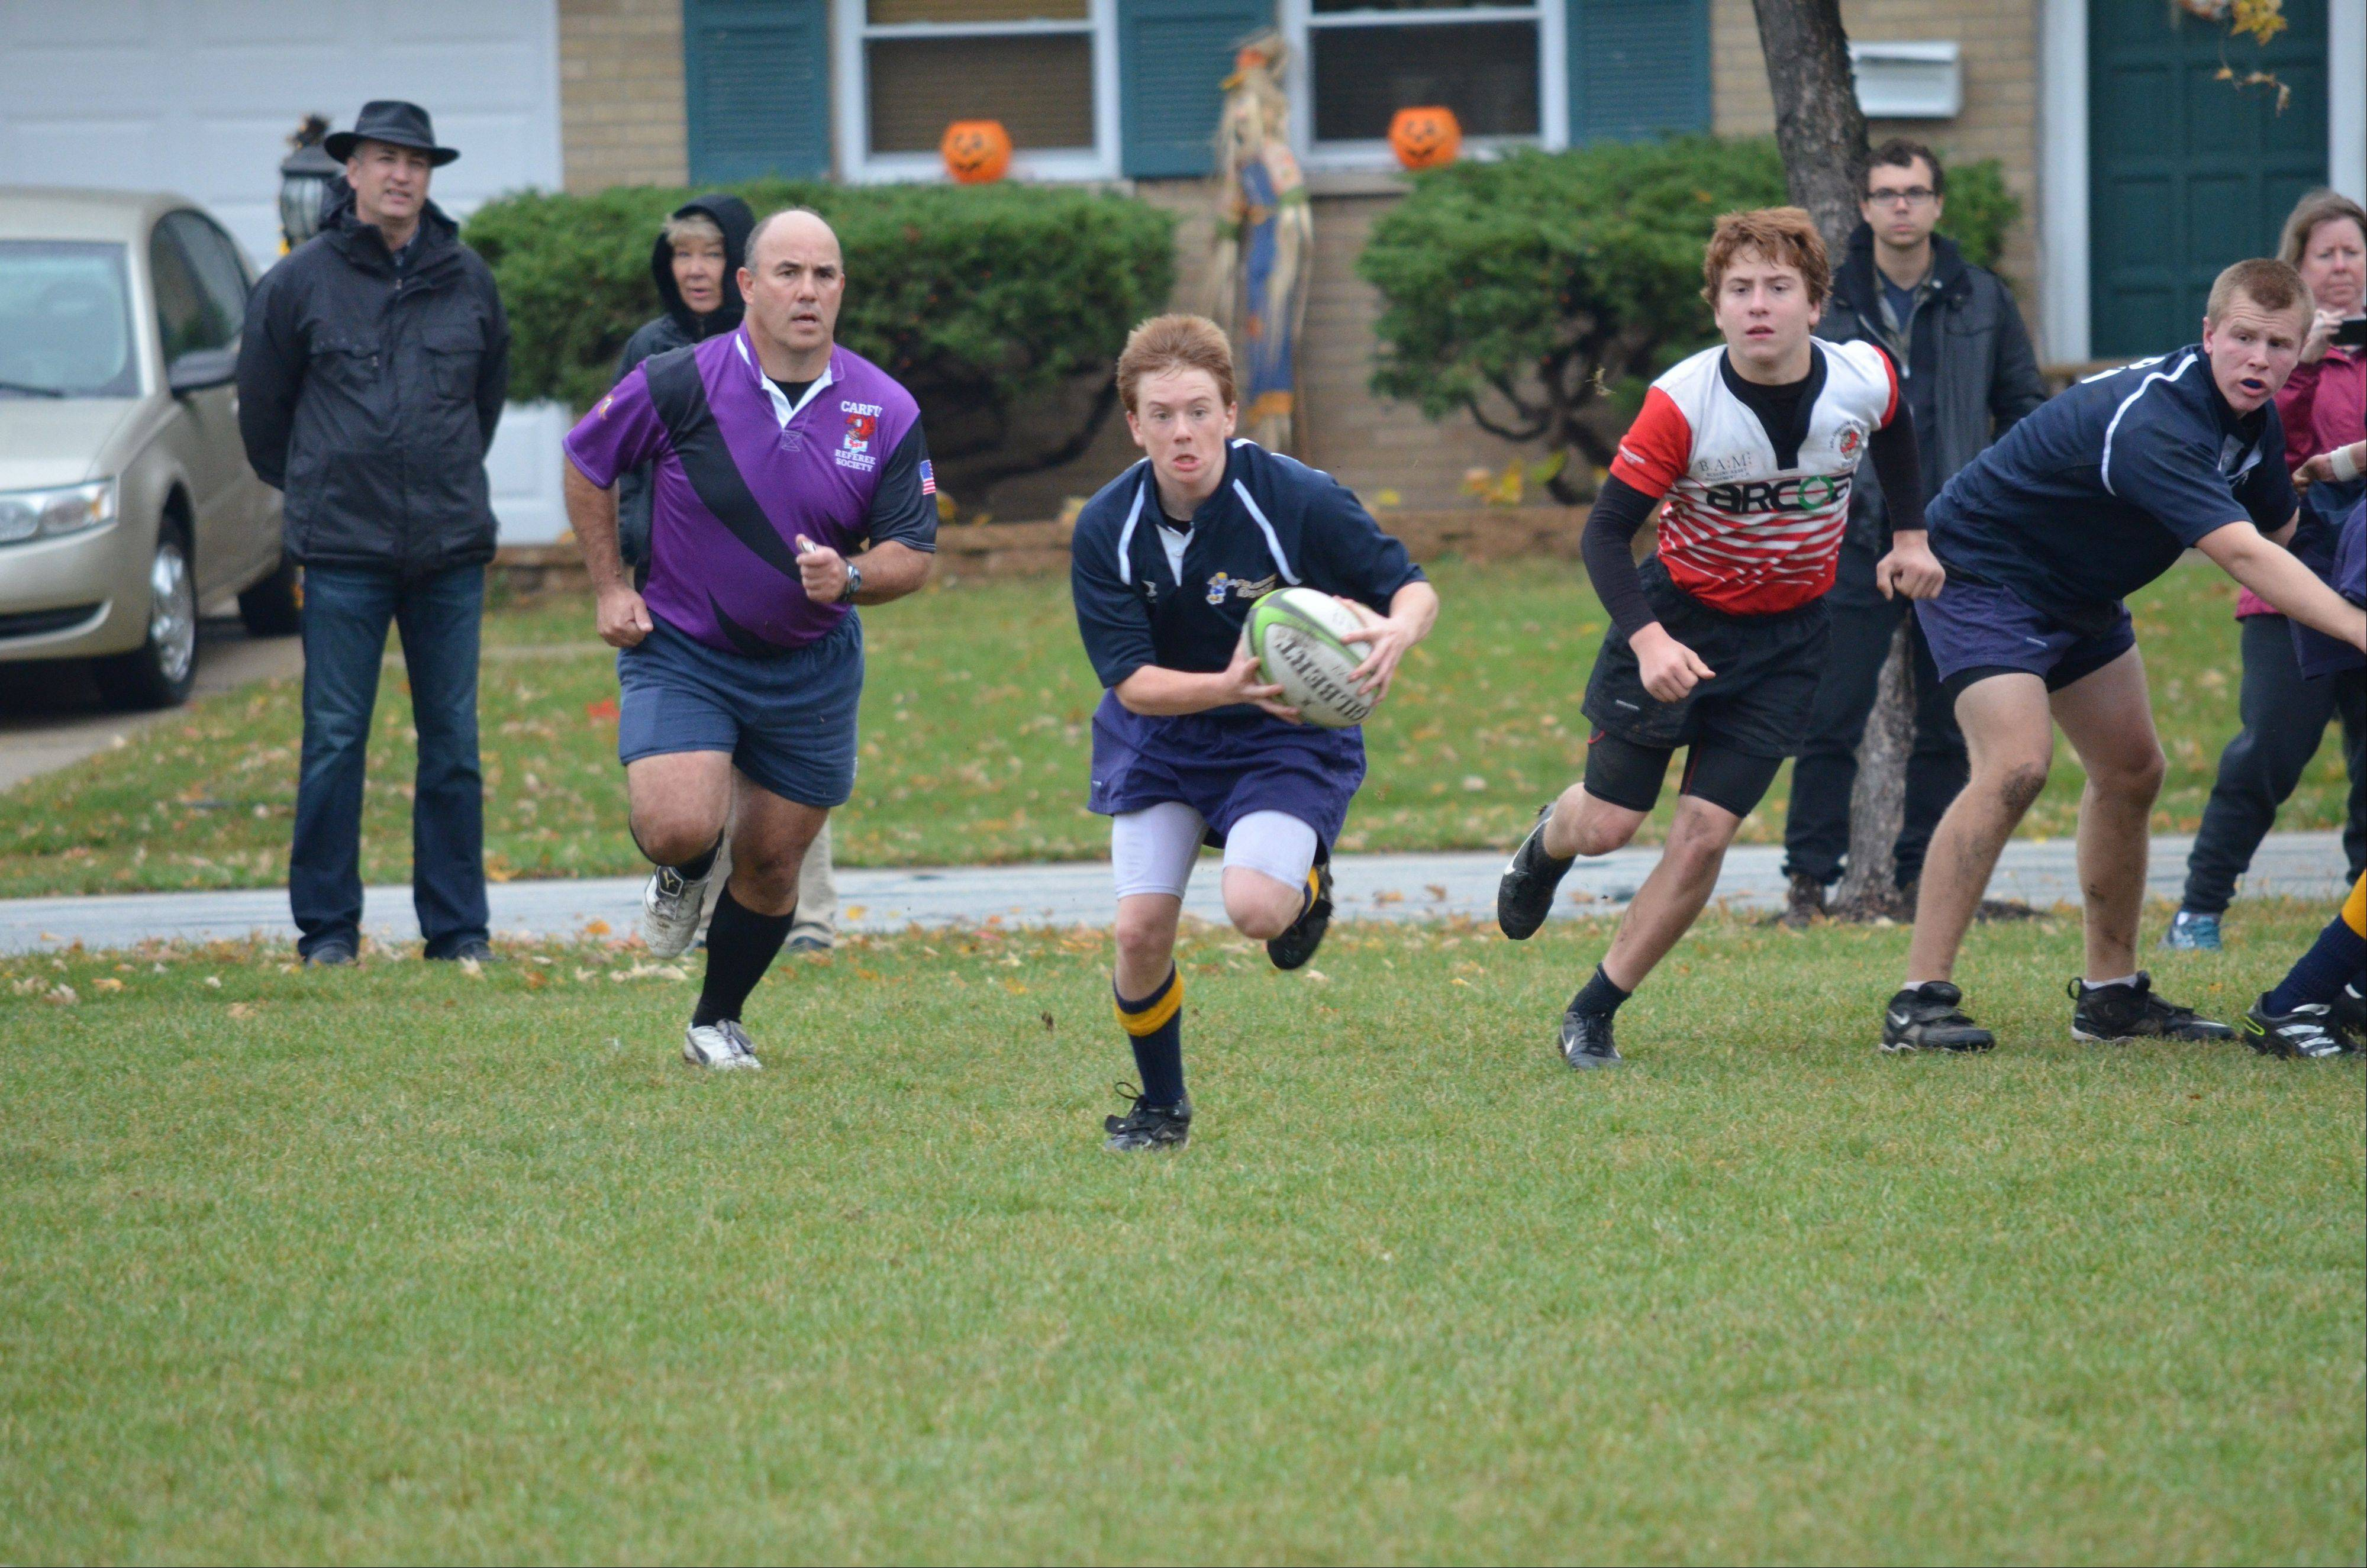 The Palatine Rugby Club offers rugby for boys and girls from the rookie level through high school